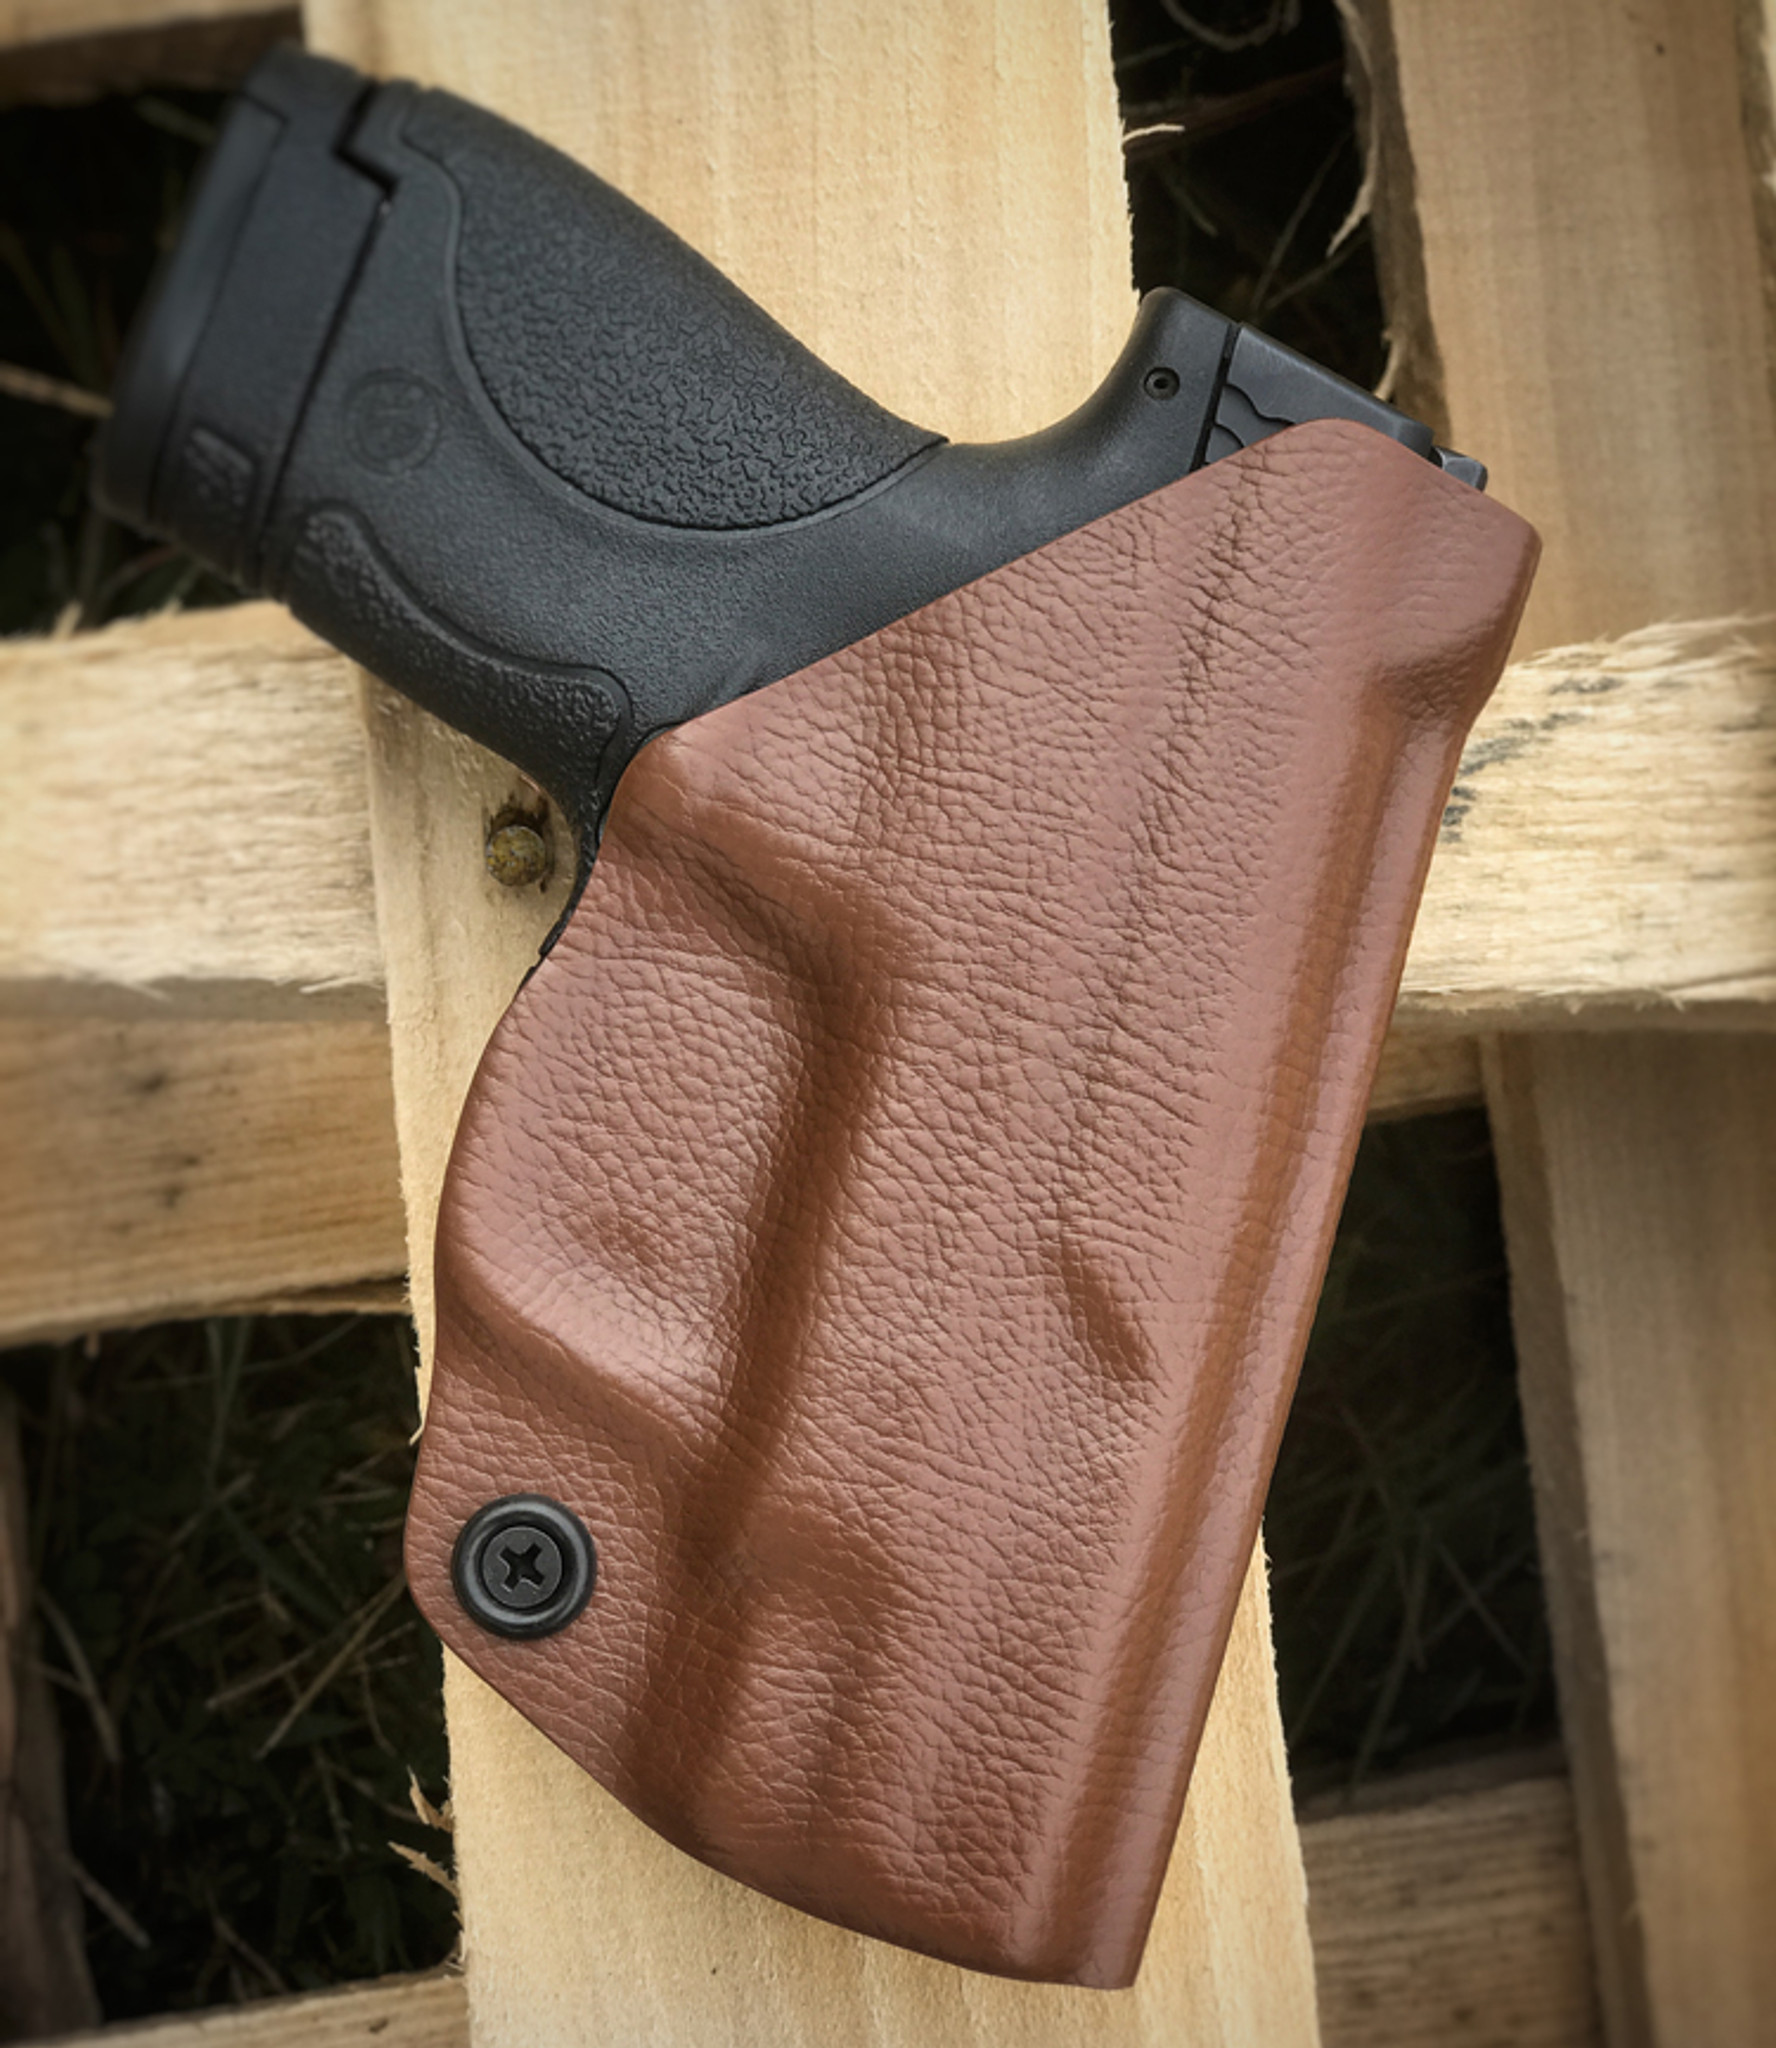 M&P Shield Paddle Holster in Brown Leather Texture